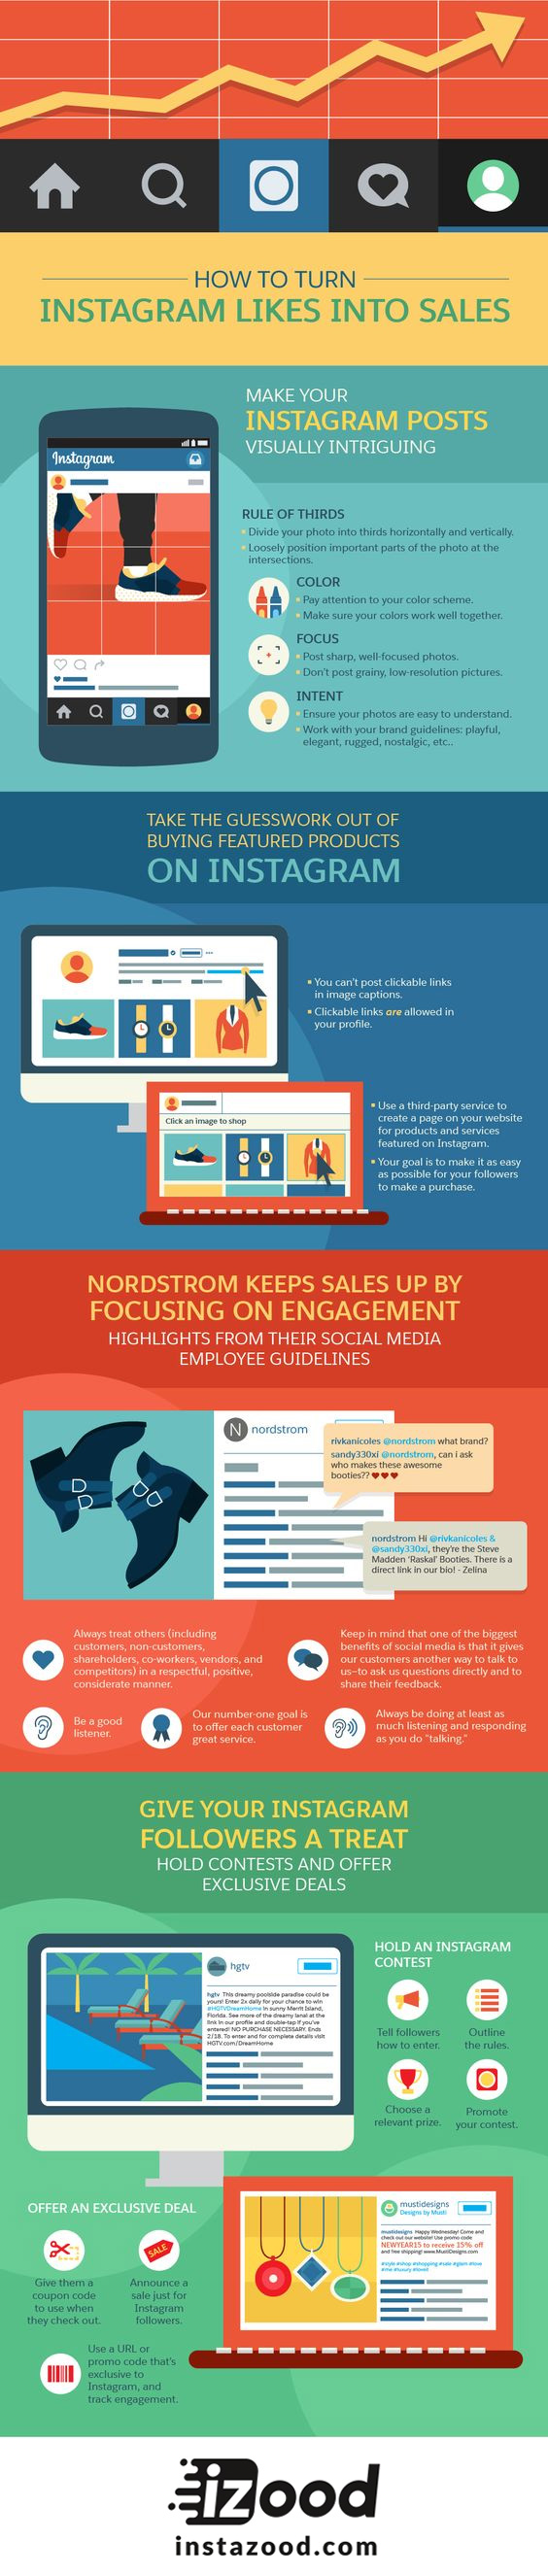 How to Turn Instagram Likes Into Sales #infographic